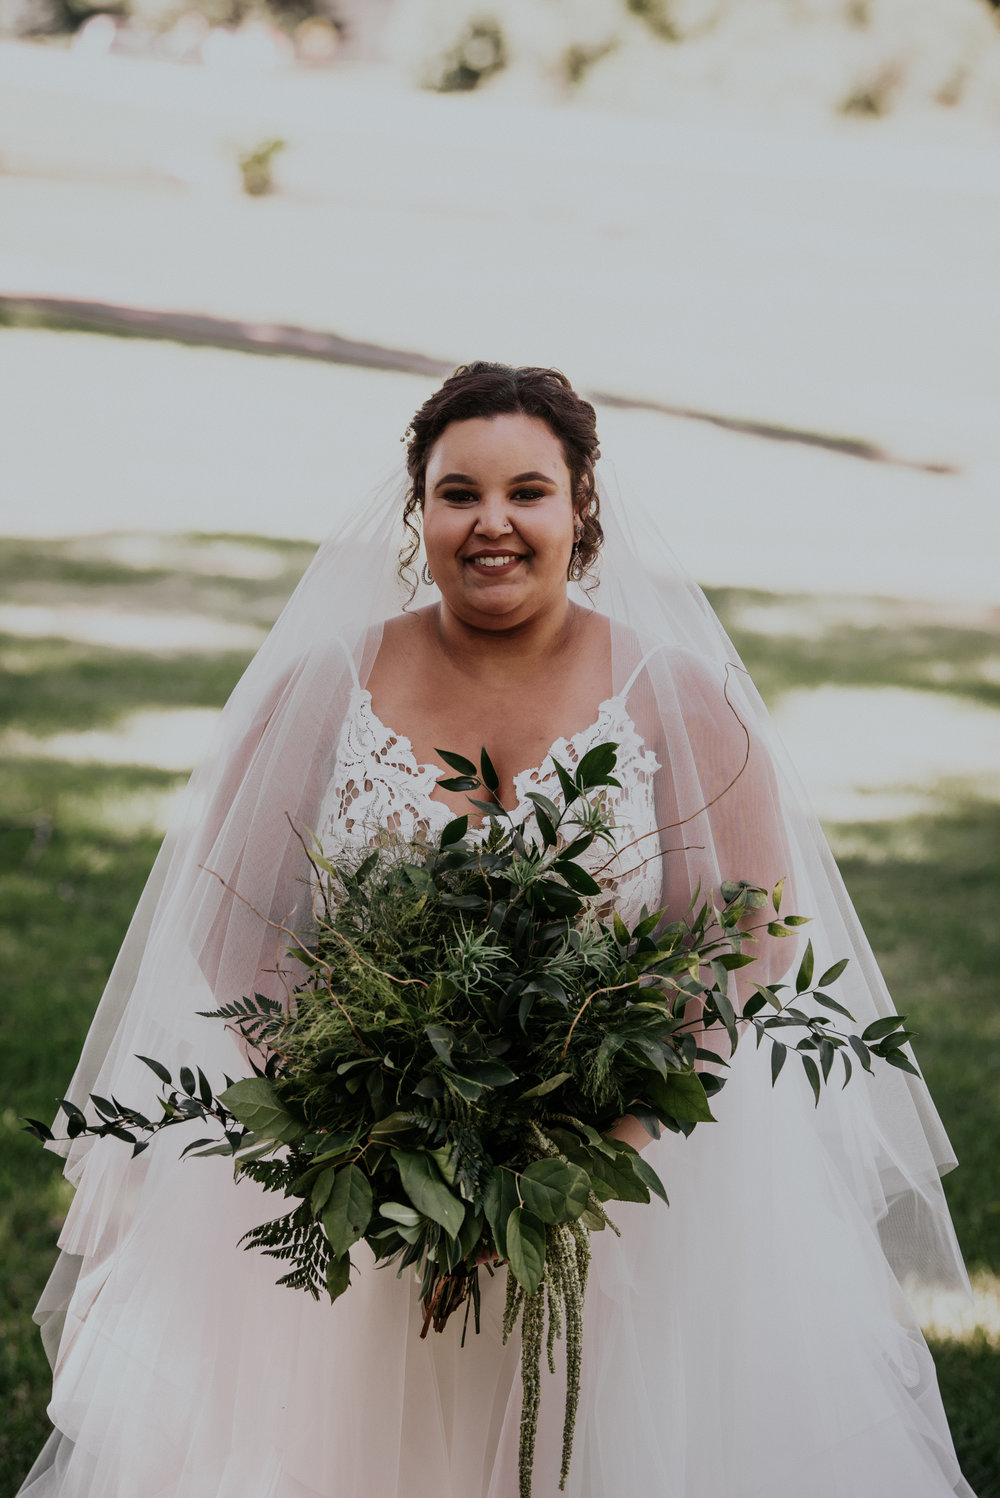 """Billy's favorite part of the day was seeing his bride walk down the aisle towards him.""""She was so pretty,"""" said Billy. -"""